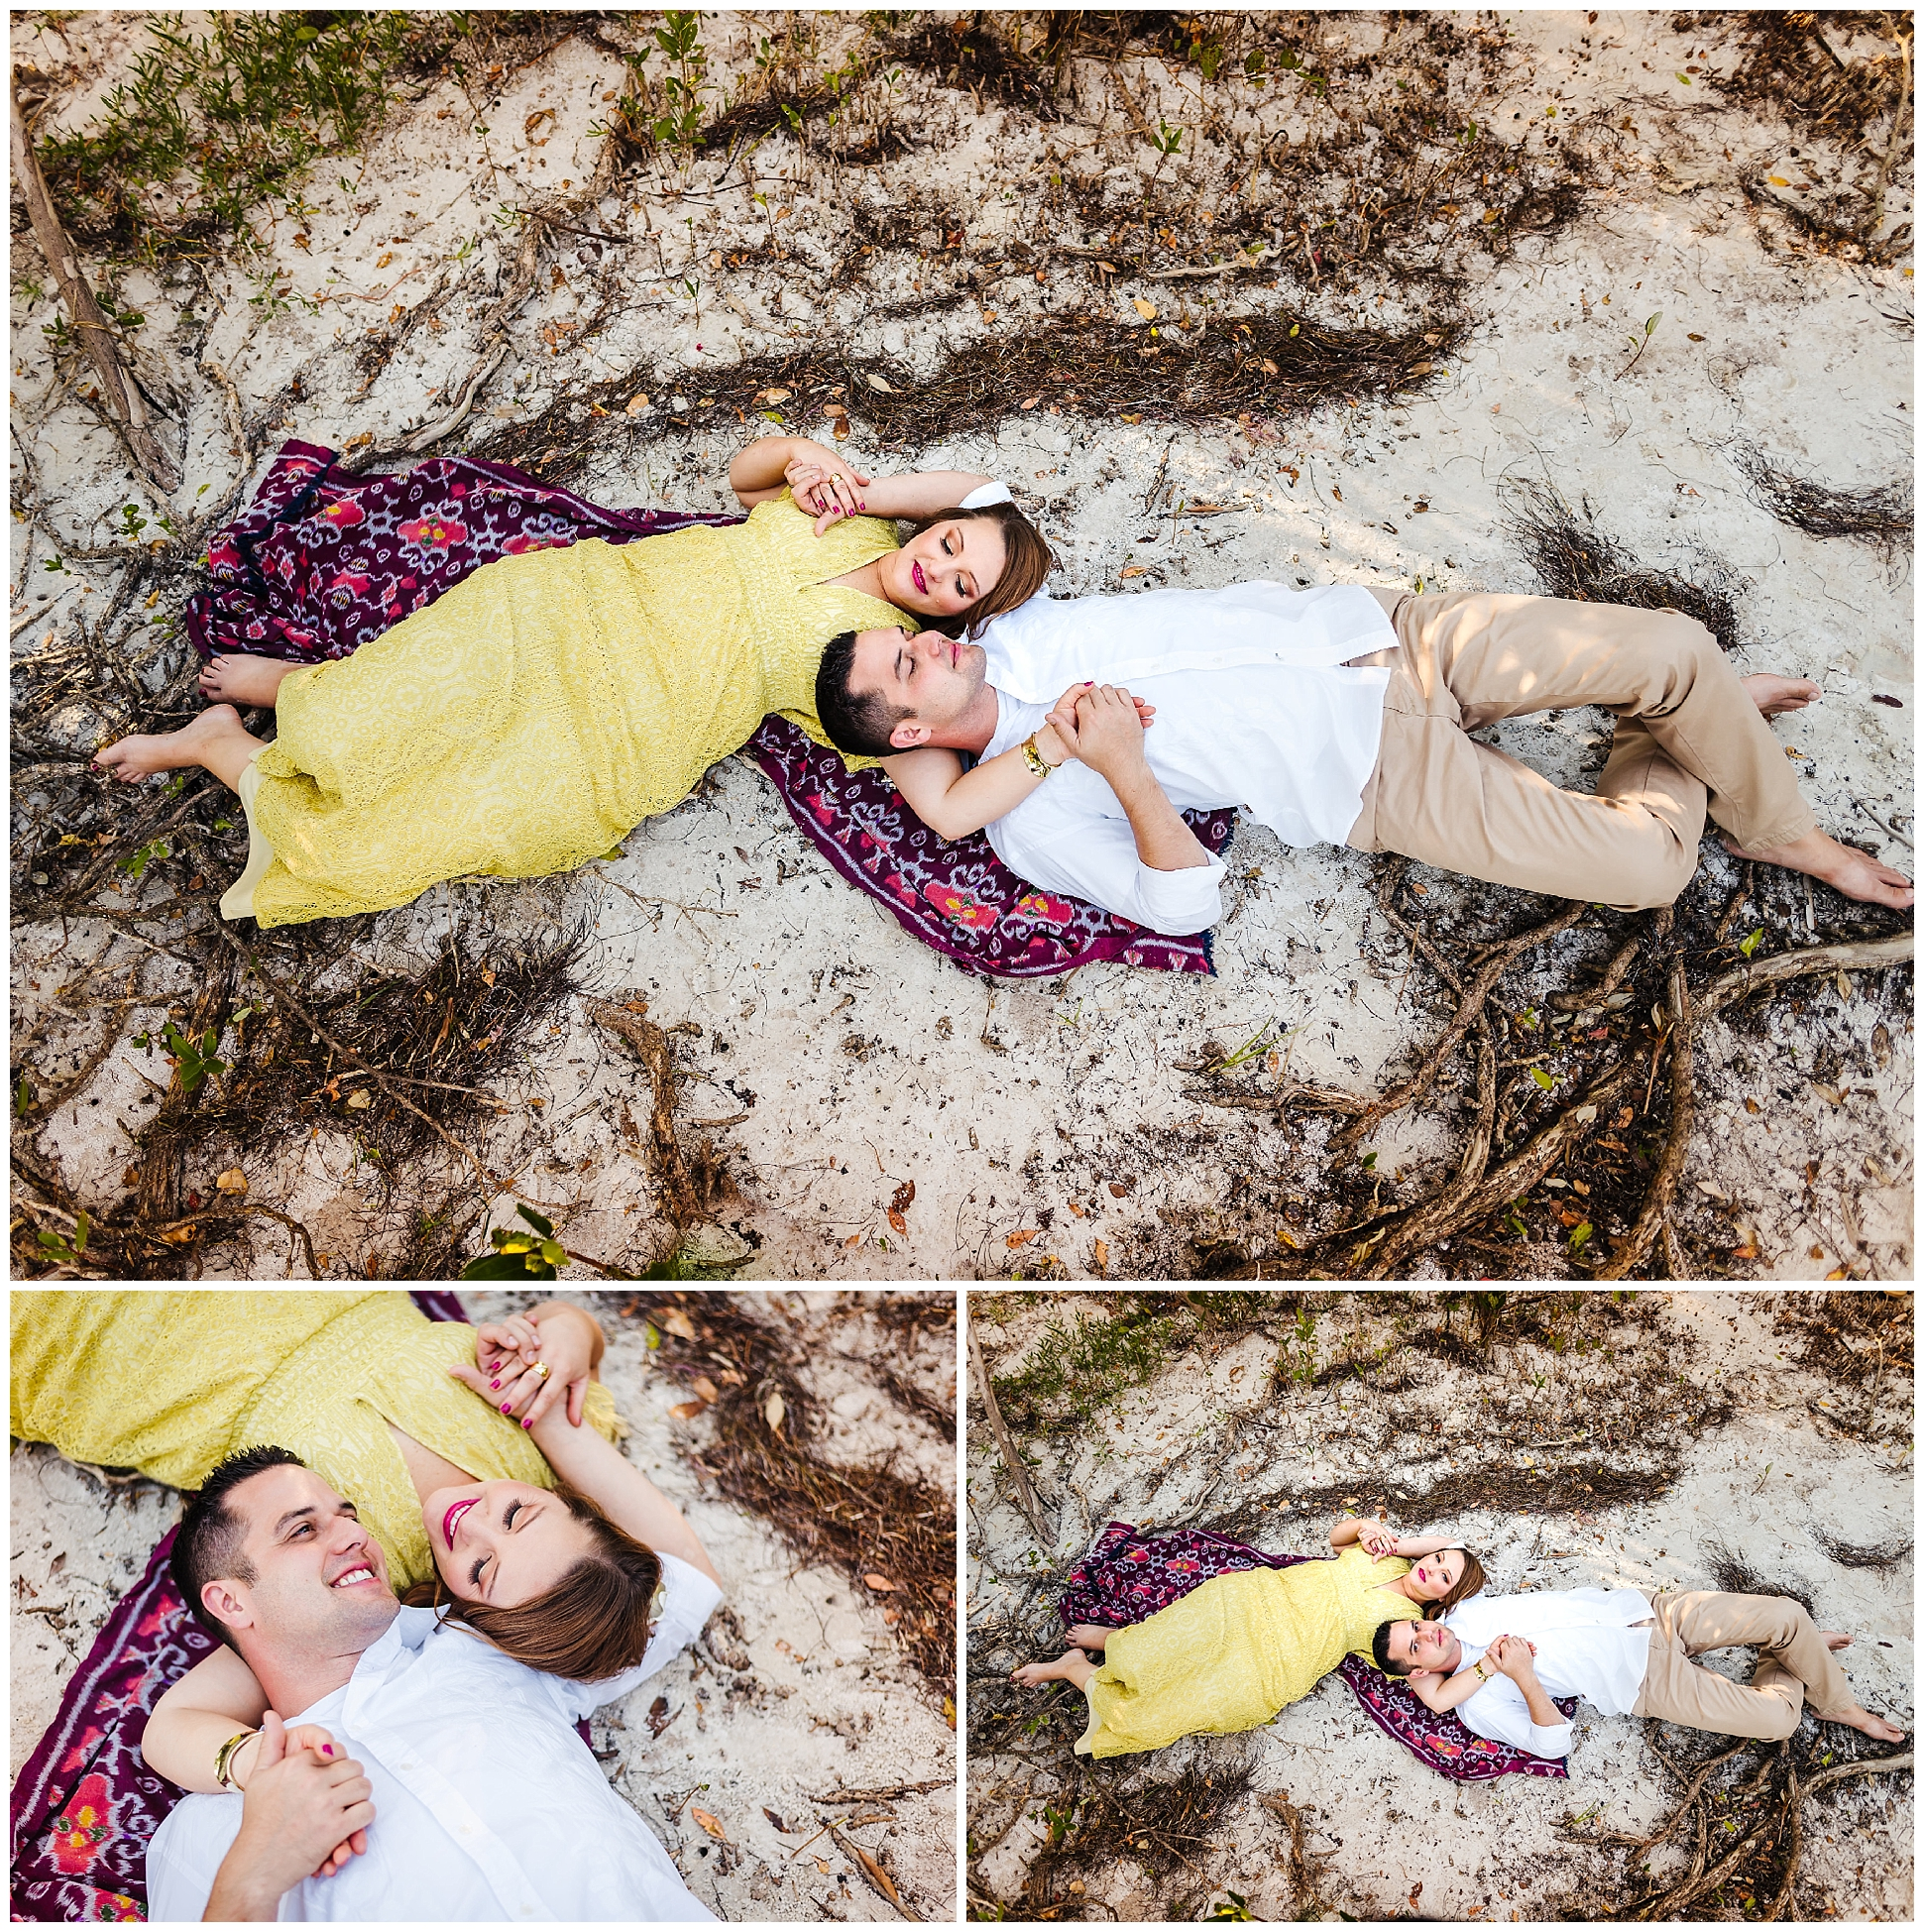 daly-digs-bali-anniversary-styled-shoot3.jpg